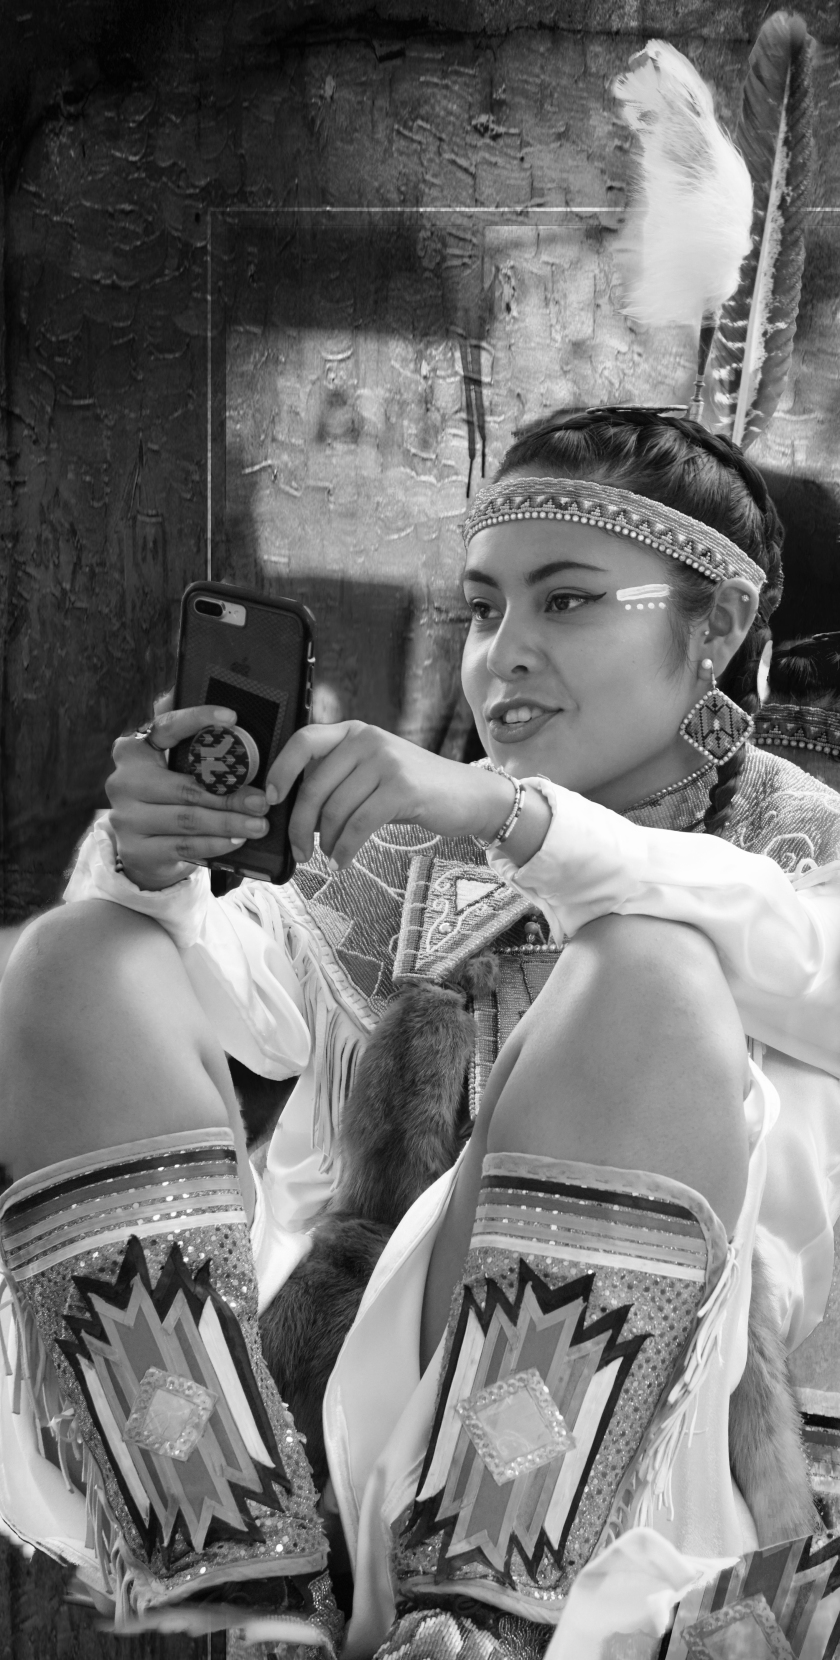 00-girl-powwow-cellphone-DSC02893_monochrome